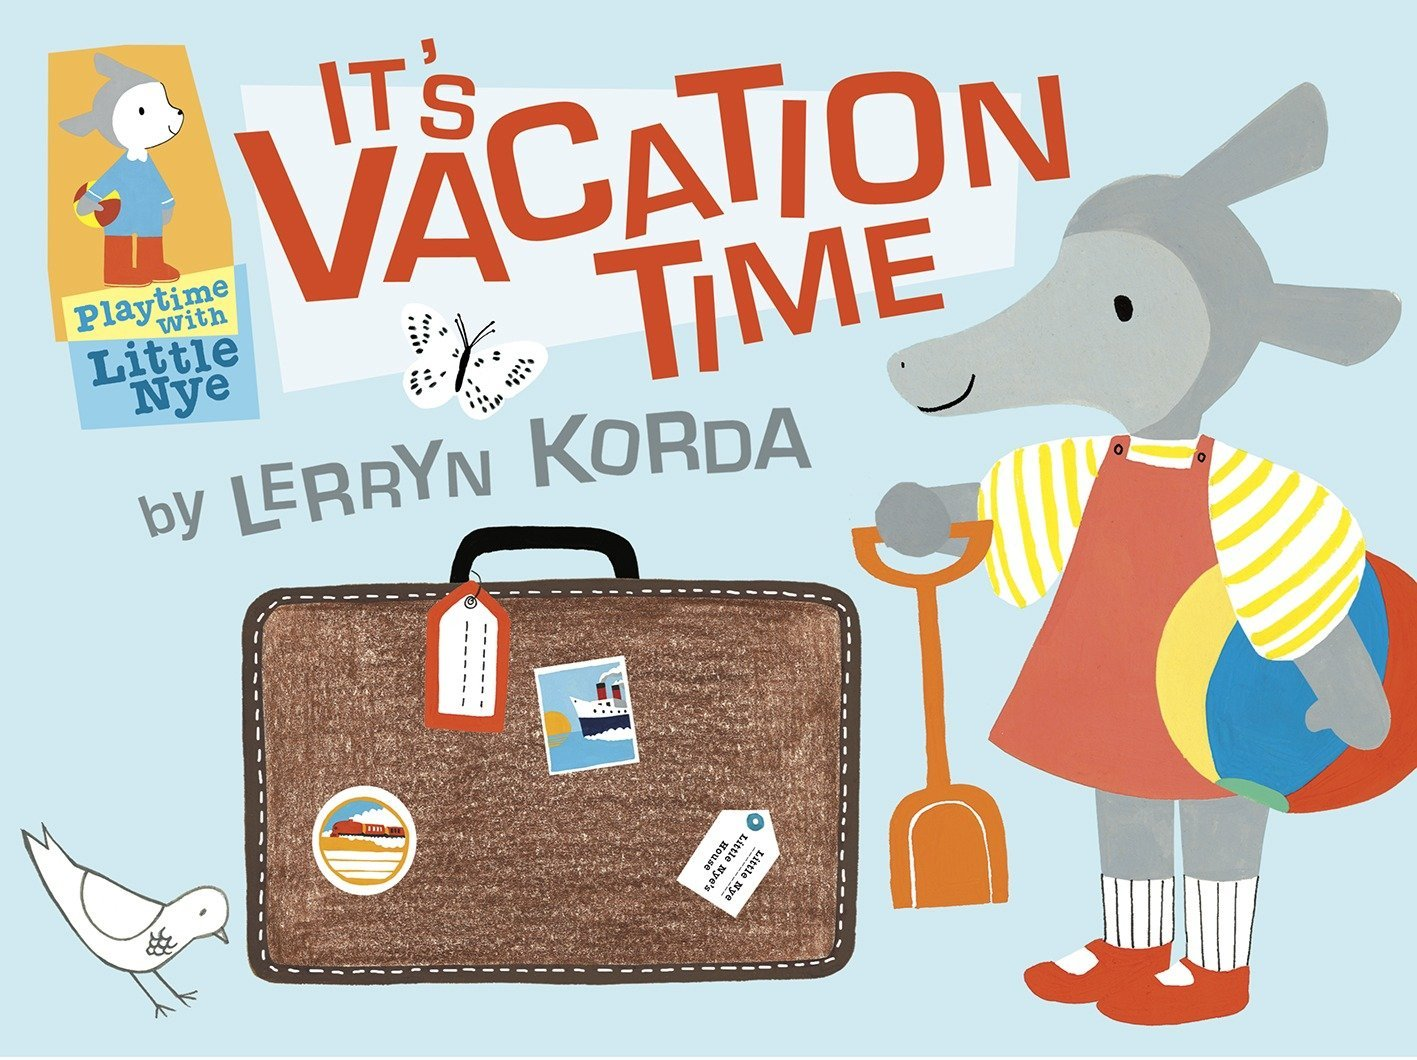 It's Vacation Time by Lerryn Koda